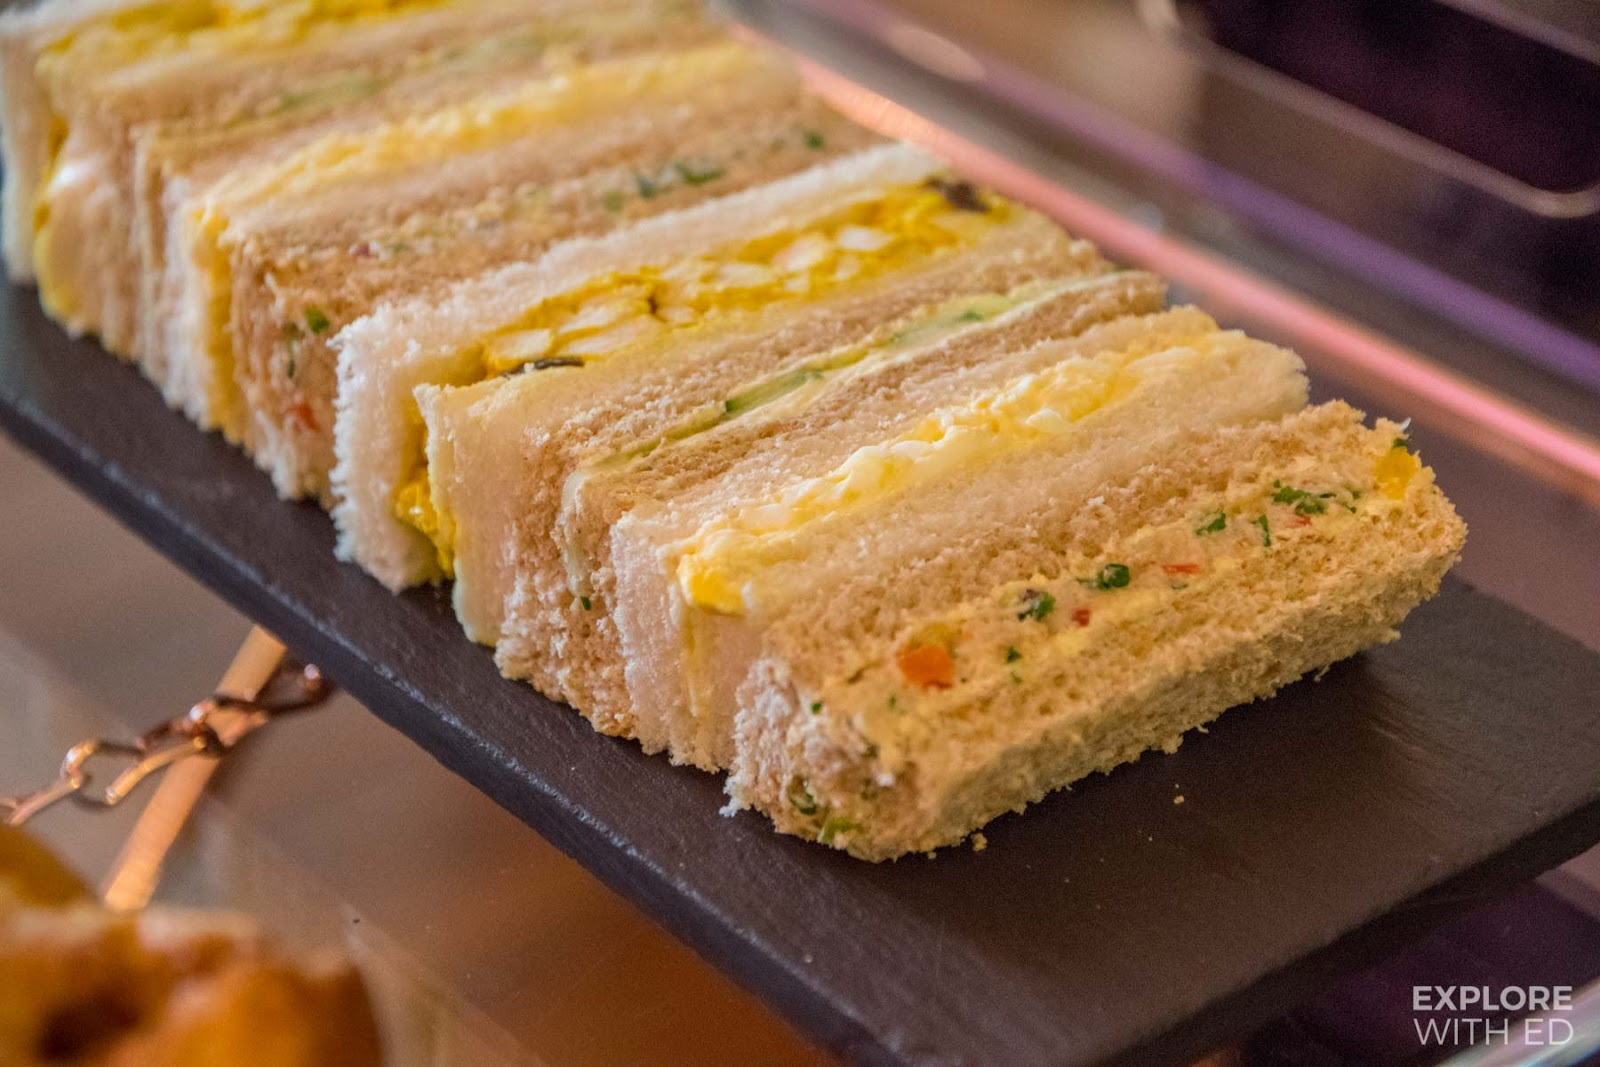 Finger sandwiches including coronation chicken, part of The Mulberry Bar Afternoon Tea